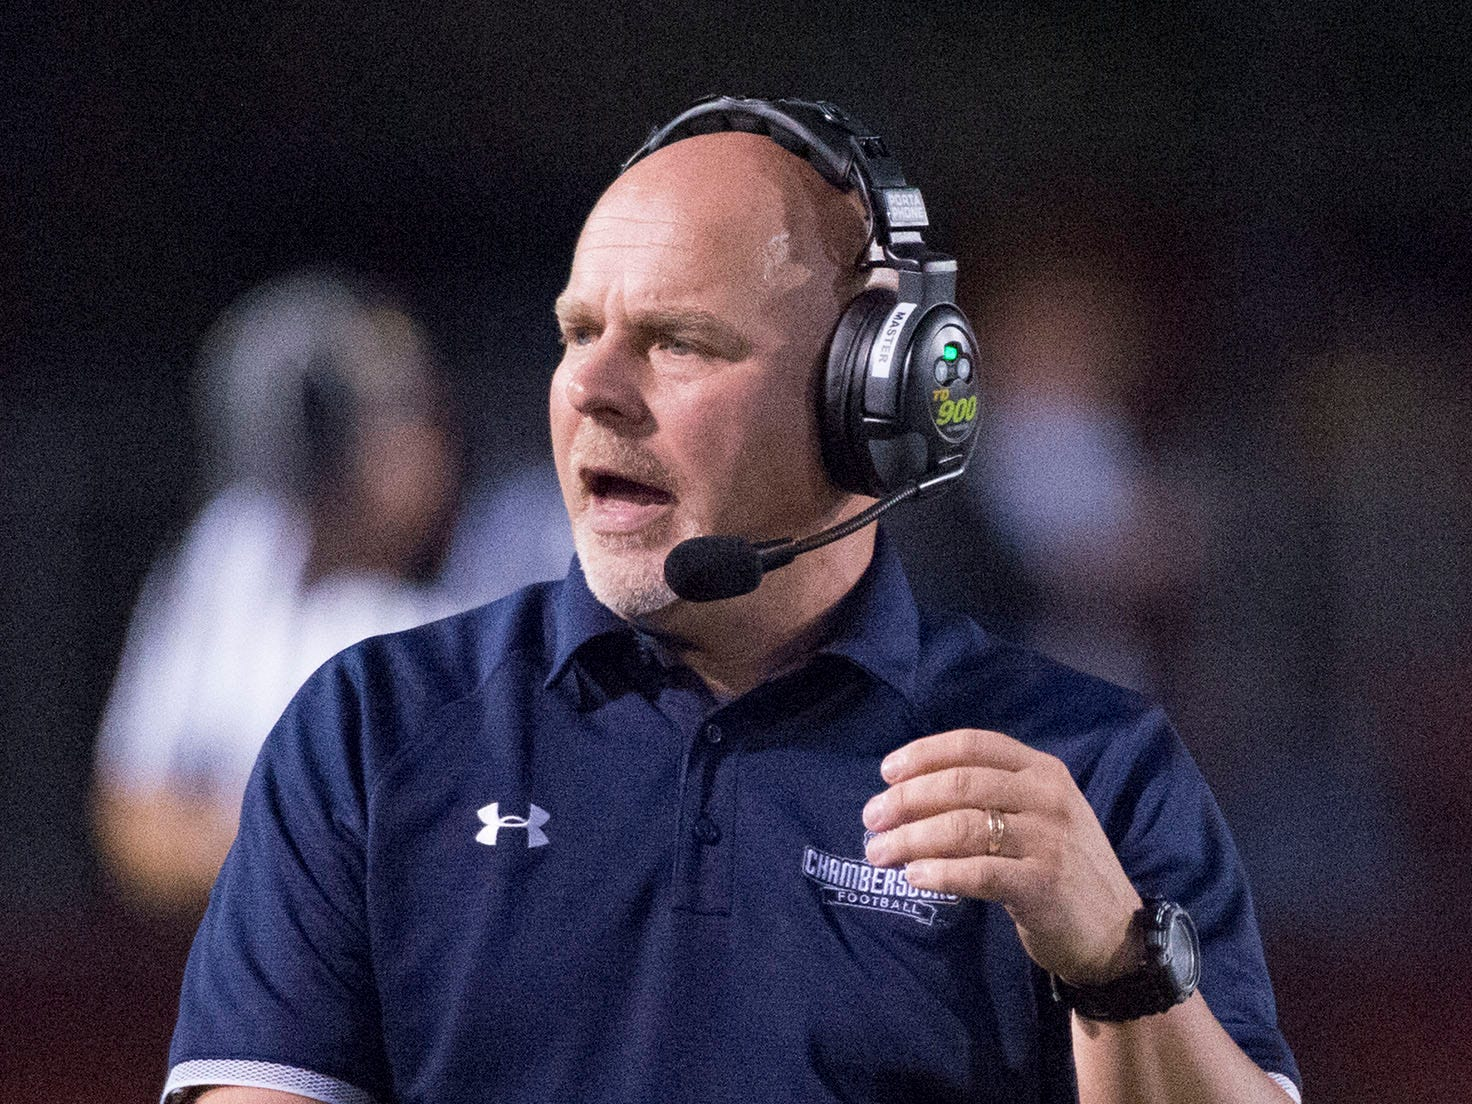 Chambersburg head coach Mark Luther leads the Trojans. Chambersburg defeated Altoona 48-28 in PIAA football to move to 4-0 on Friday, Sept. 14, 2018.